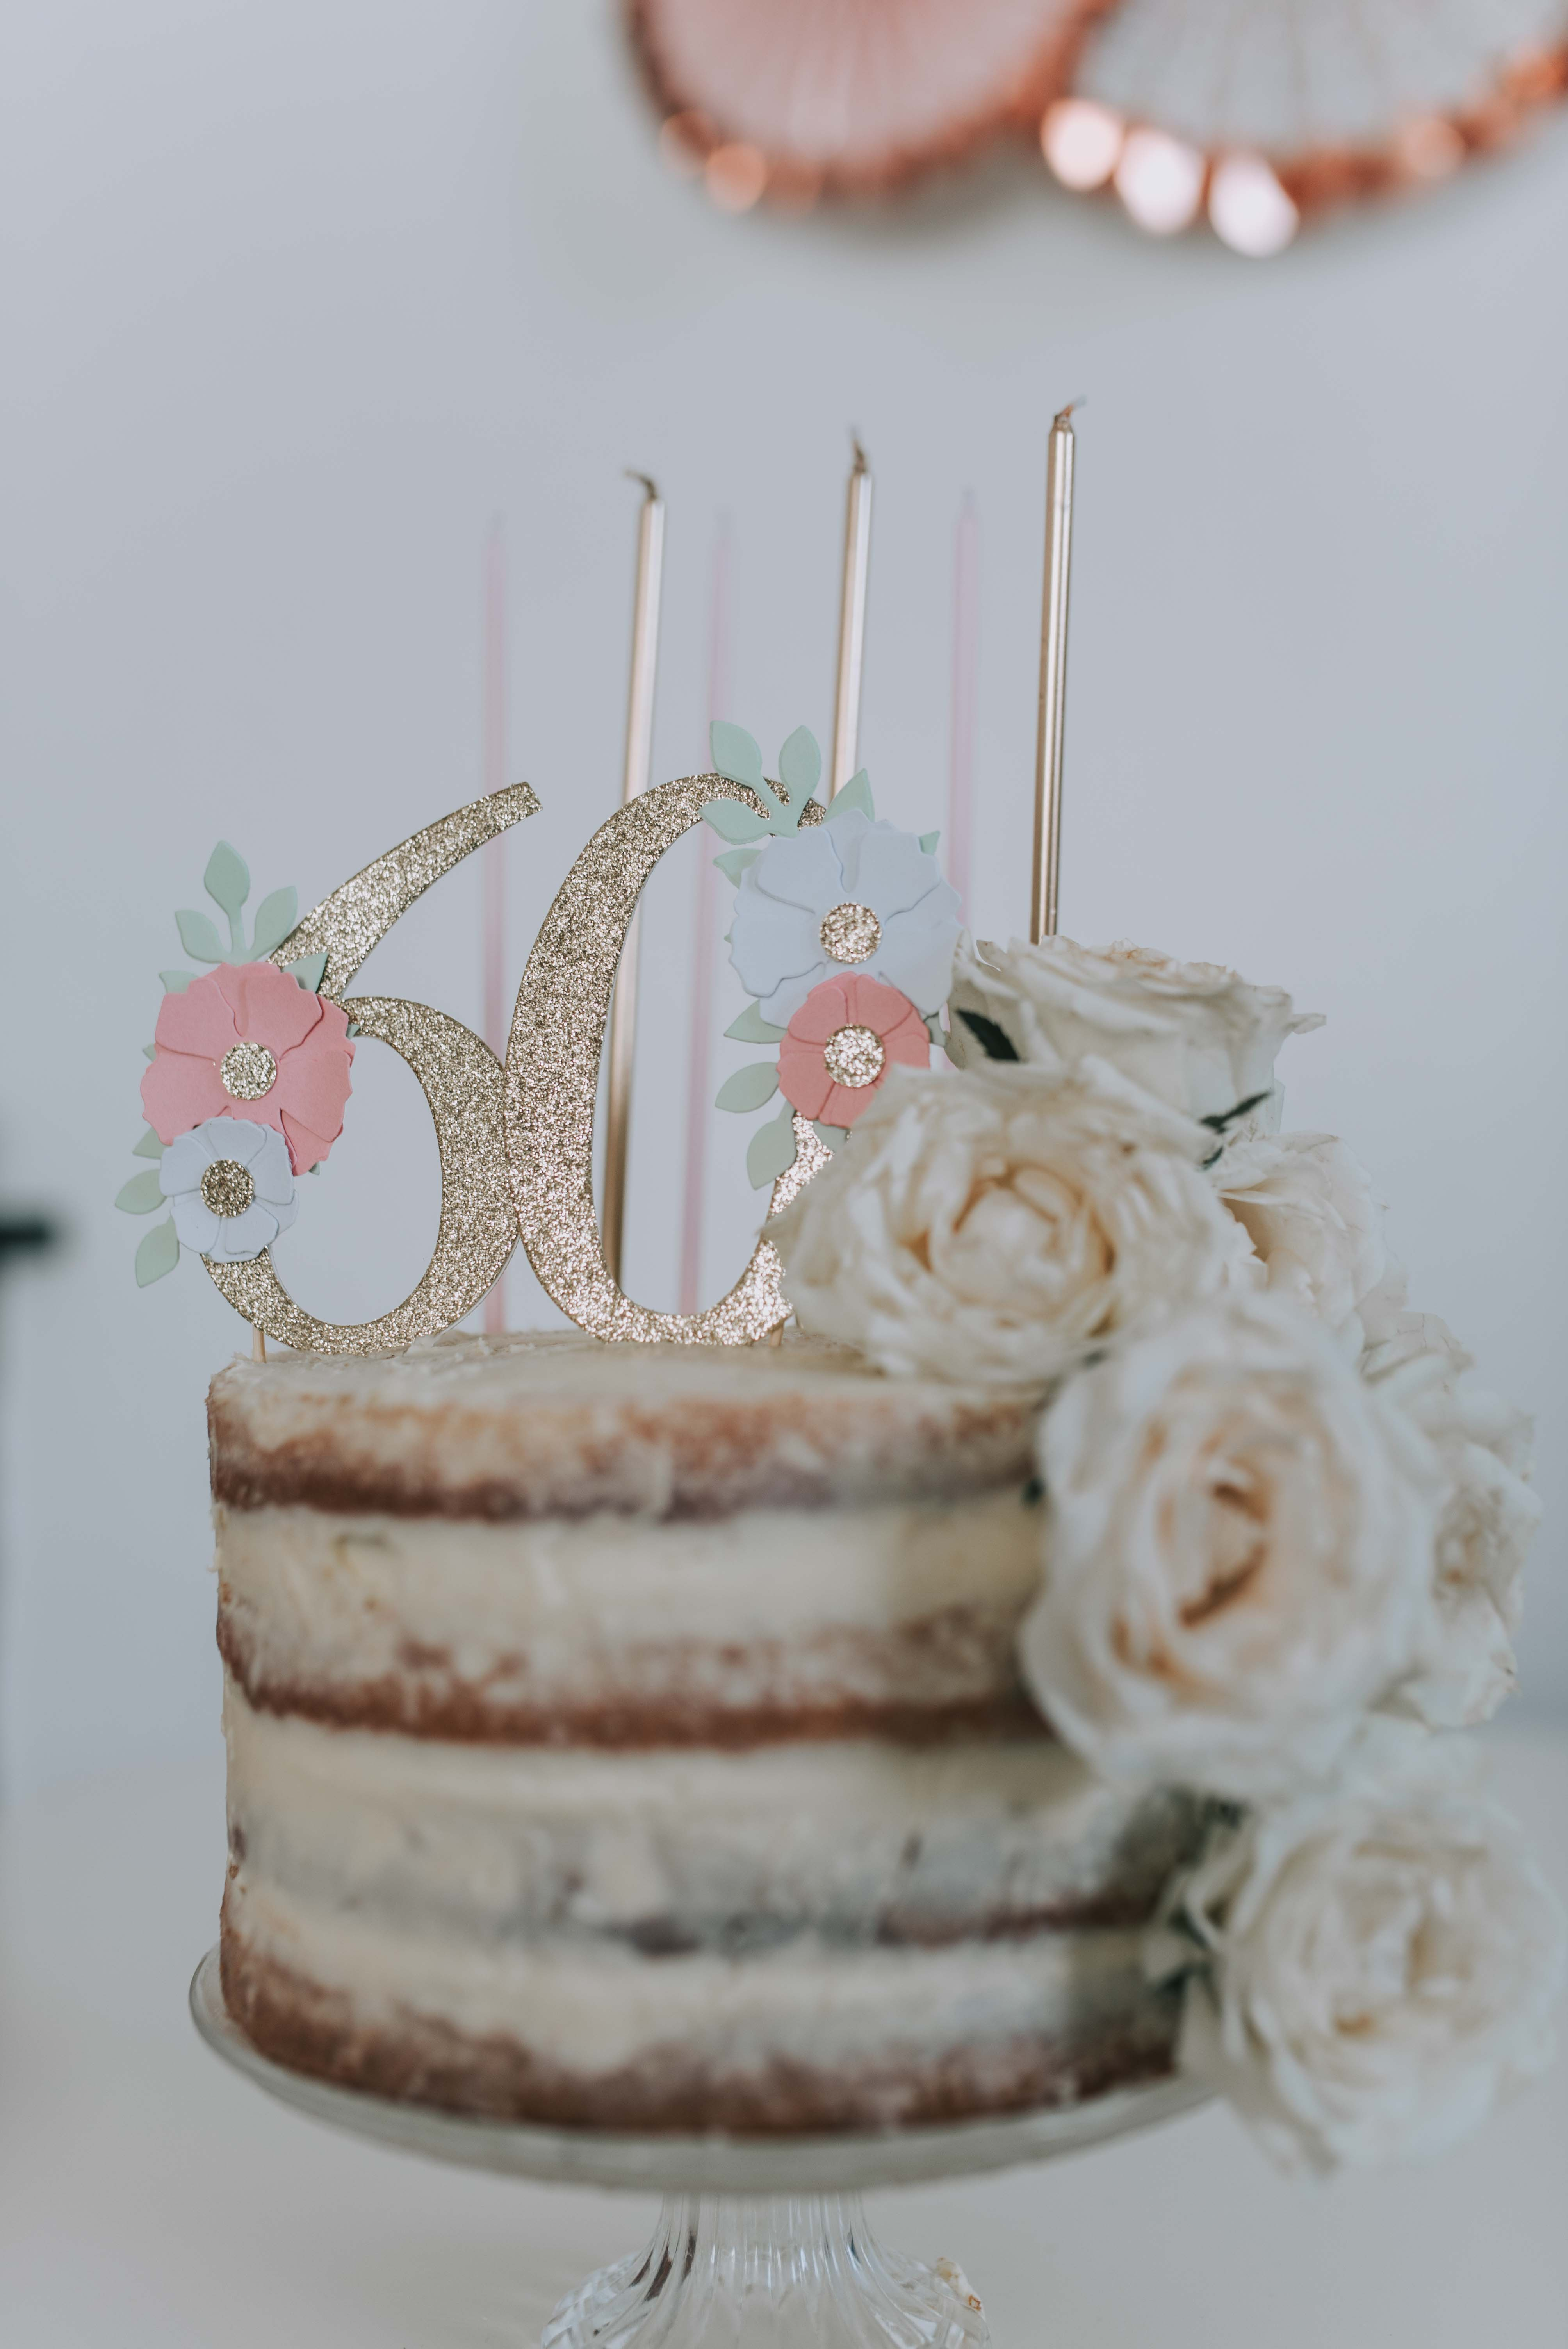 The Pink And Gold Candles Sat So Nicely On Naked Cake I Made Well It Was A Betty Crocker Mix Then Had Gorgeous 60 Topper From